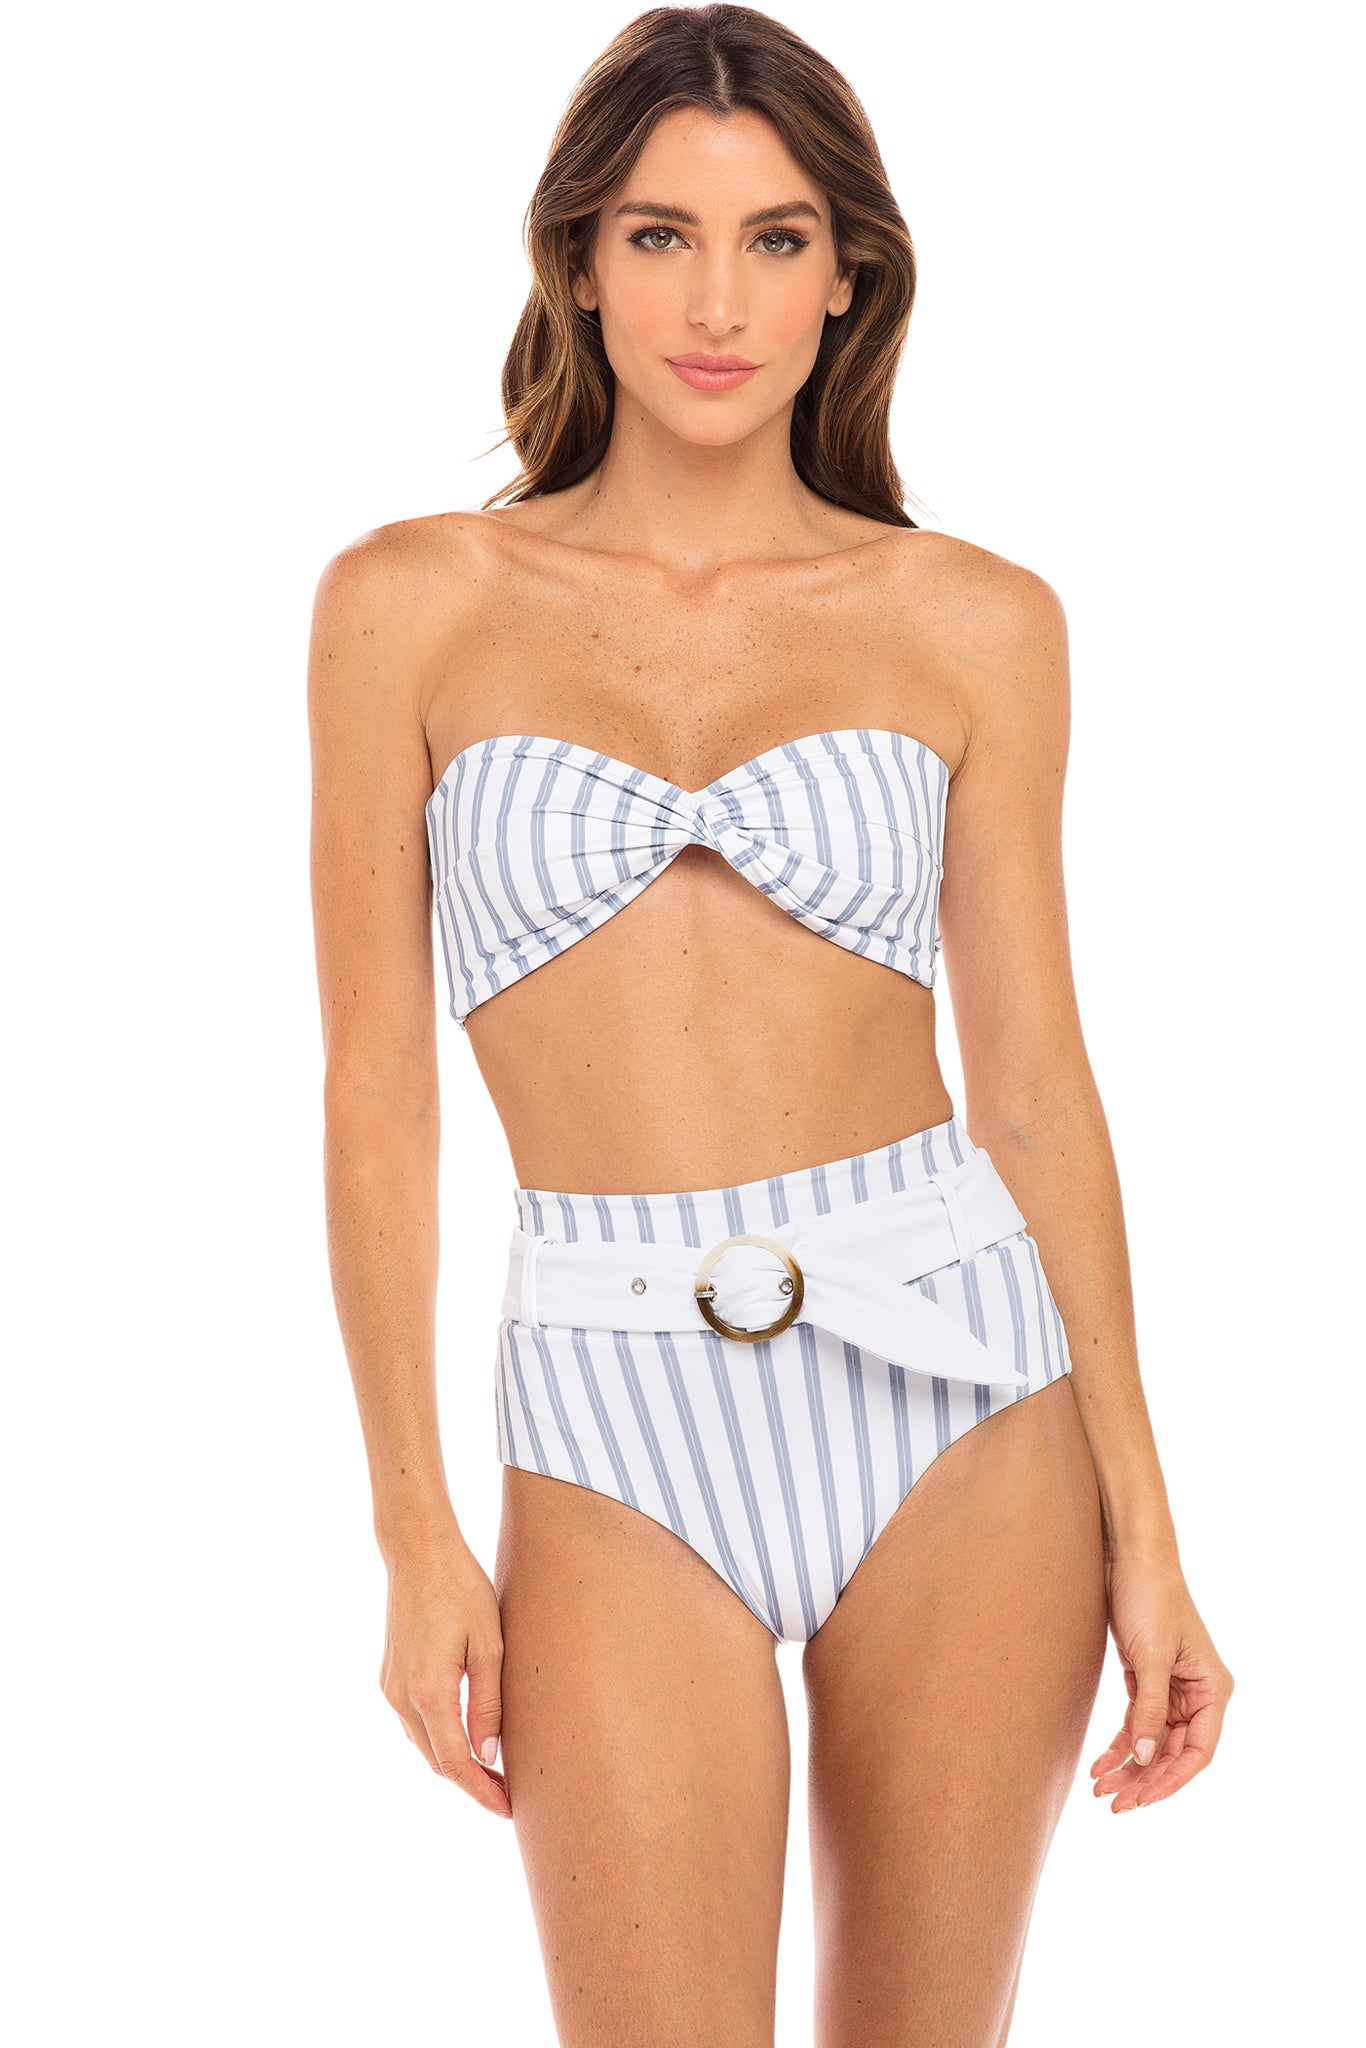 Quinn Bandeau Twist Top in Hampton Blue and White Stripe